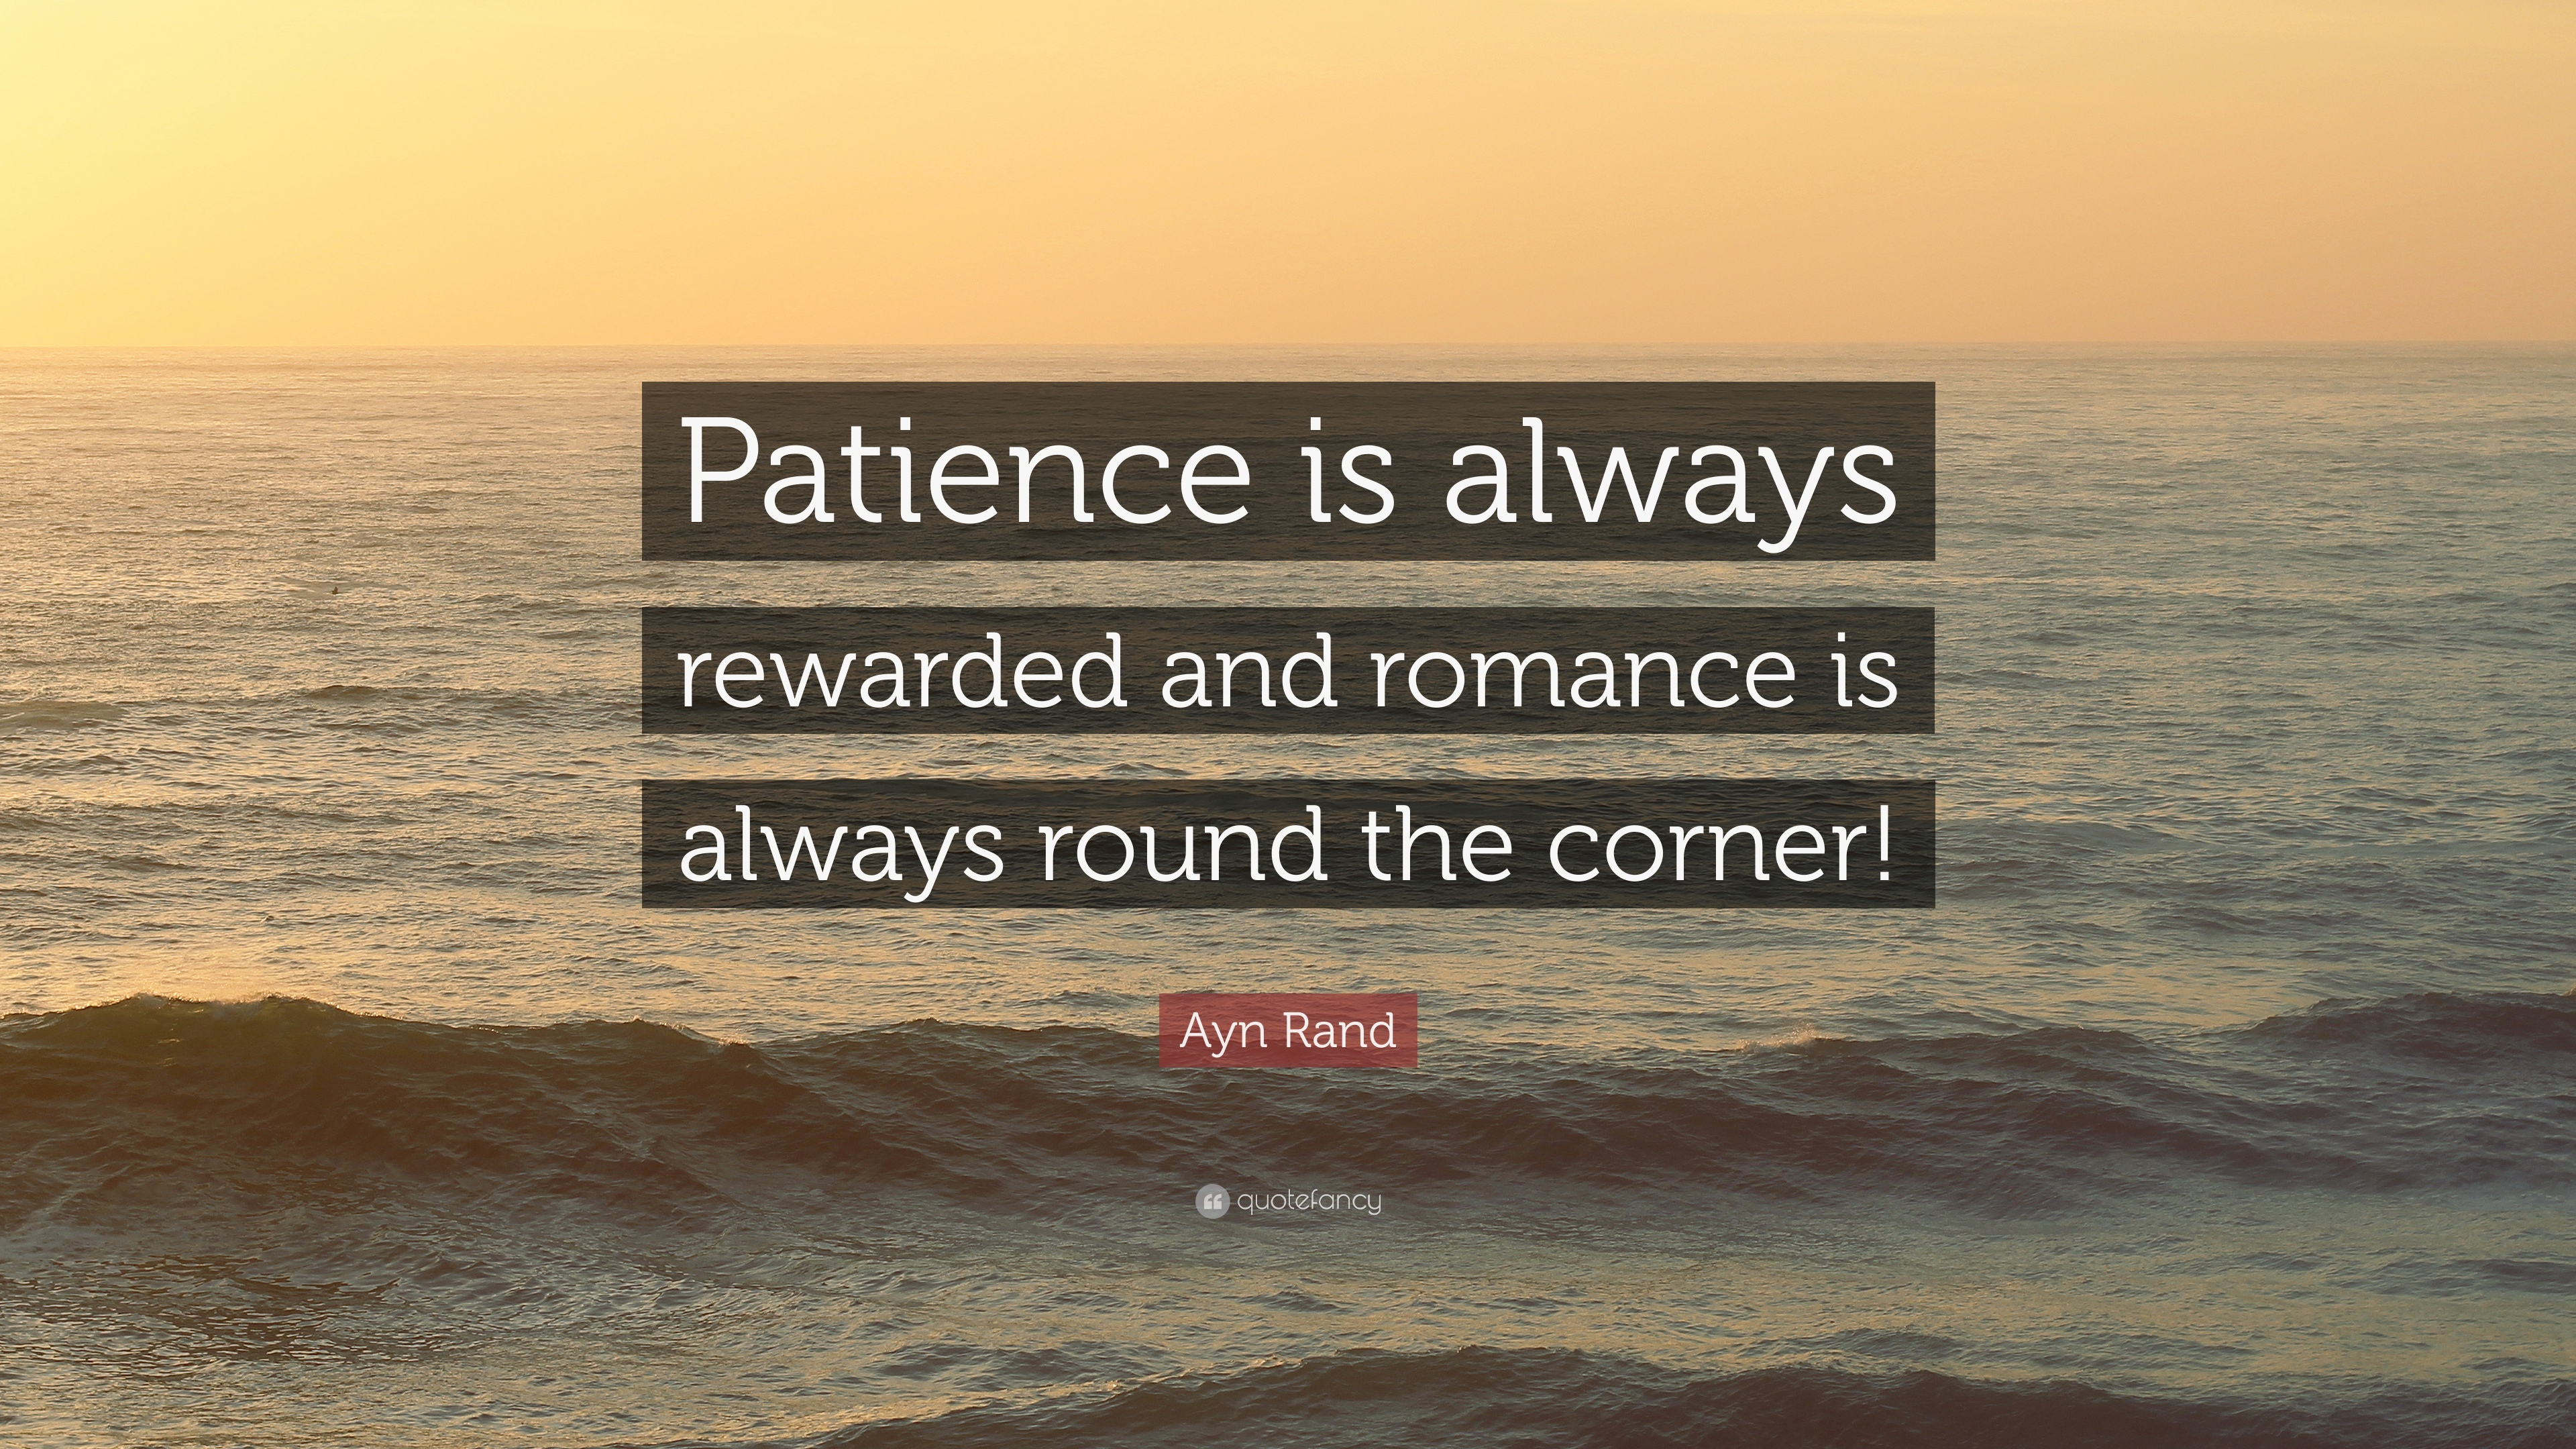 Attractive Ayn Rand Quote: U201cPatience Is Always Rewarded And Romance Is Always Round  The Corner